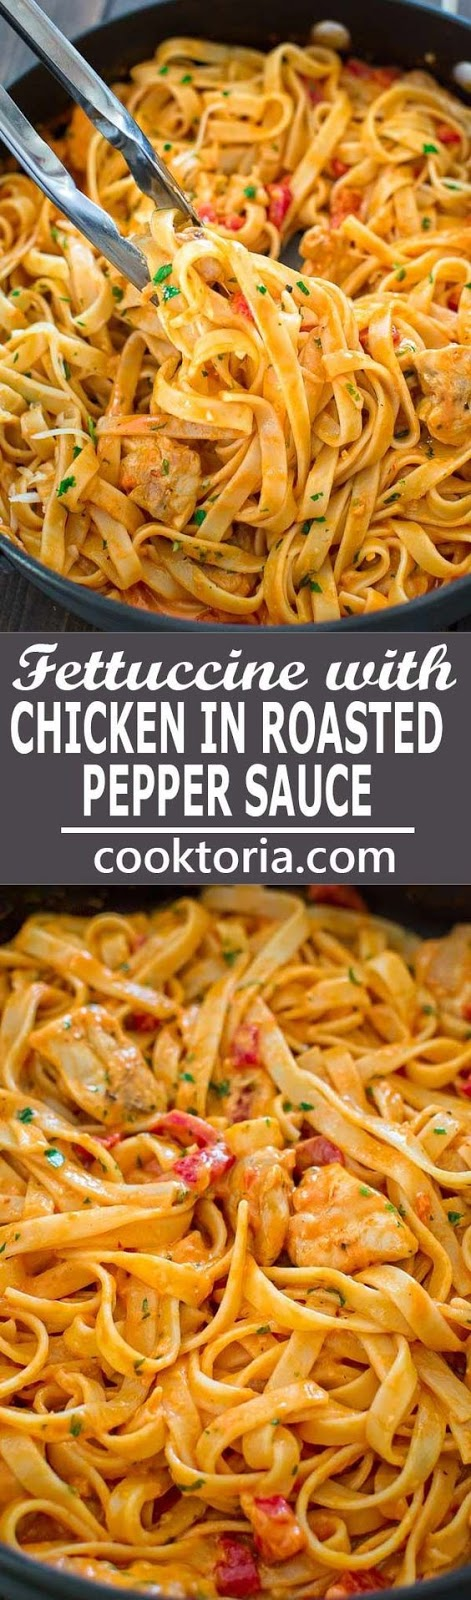 FETTUCCINE WITH ROASTED PEPPER SAUCE #fettuccine #roastedpepper #sauce #pasta #pastarecipes #easypastarecipes